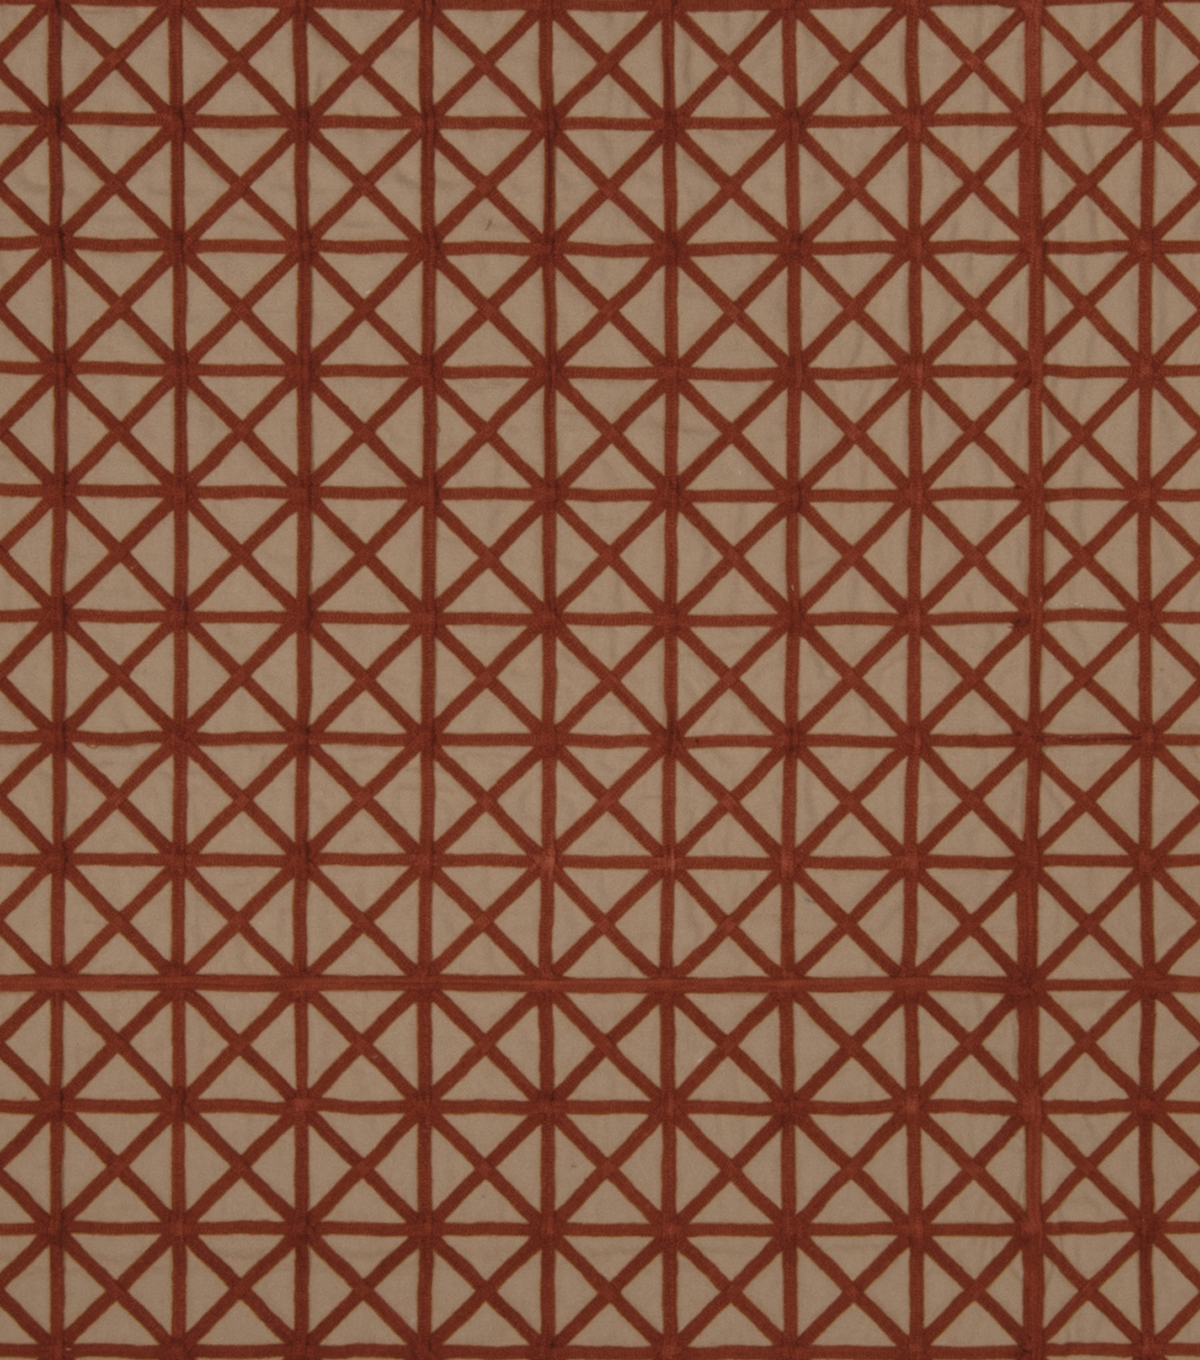 Home Decor 8\u0022x8\u0022 Fabric Swatch-Jaclyn Smith Tasty Brick